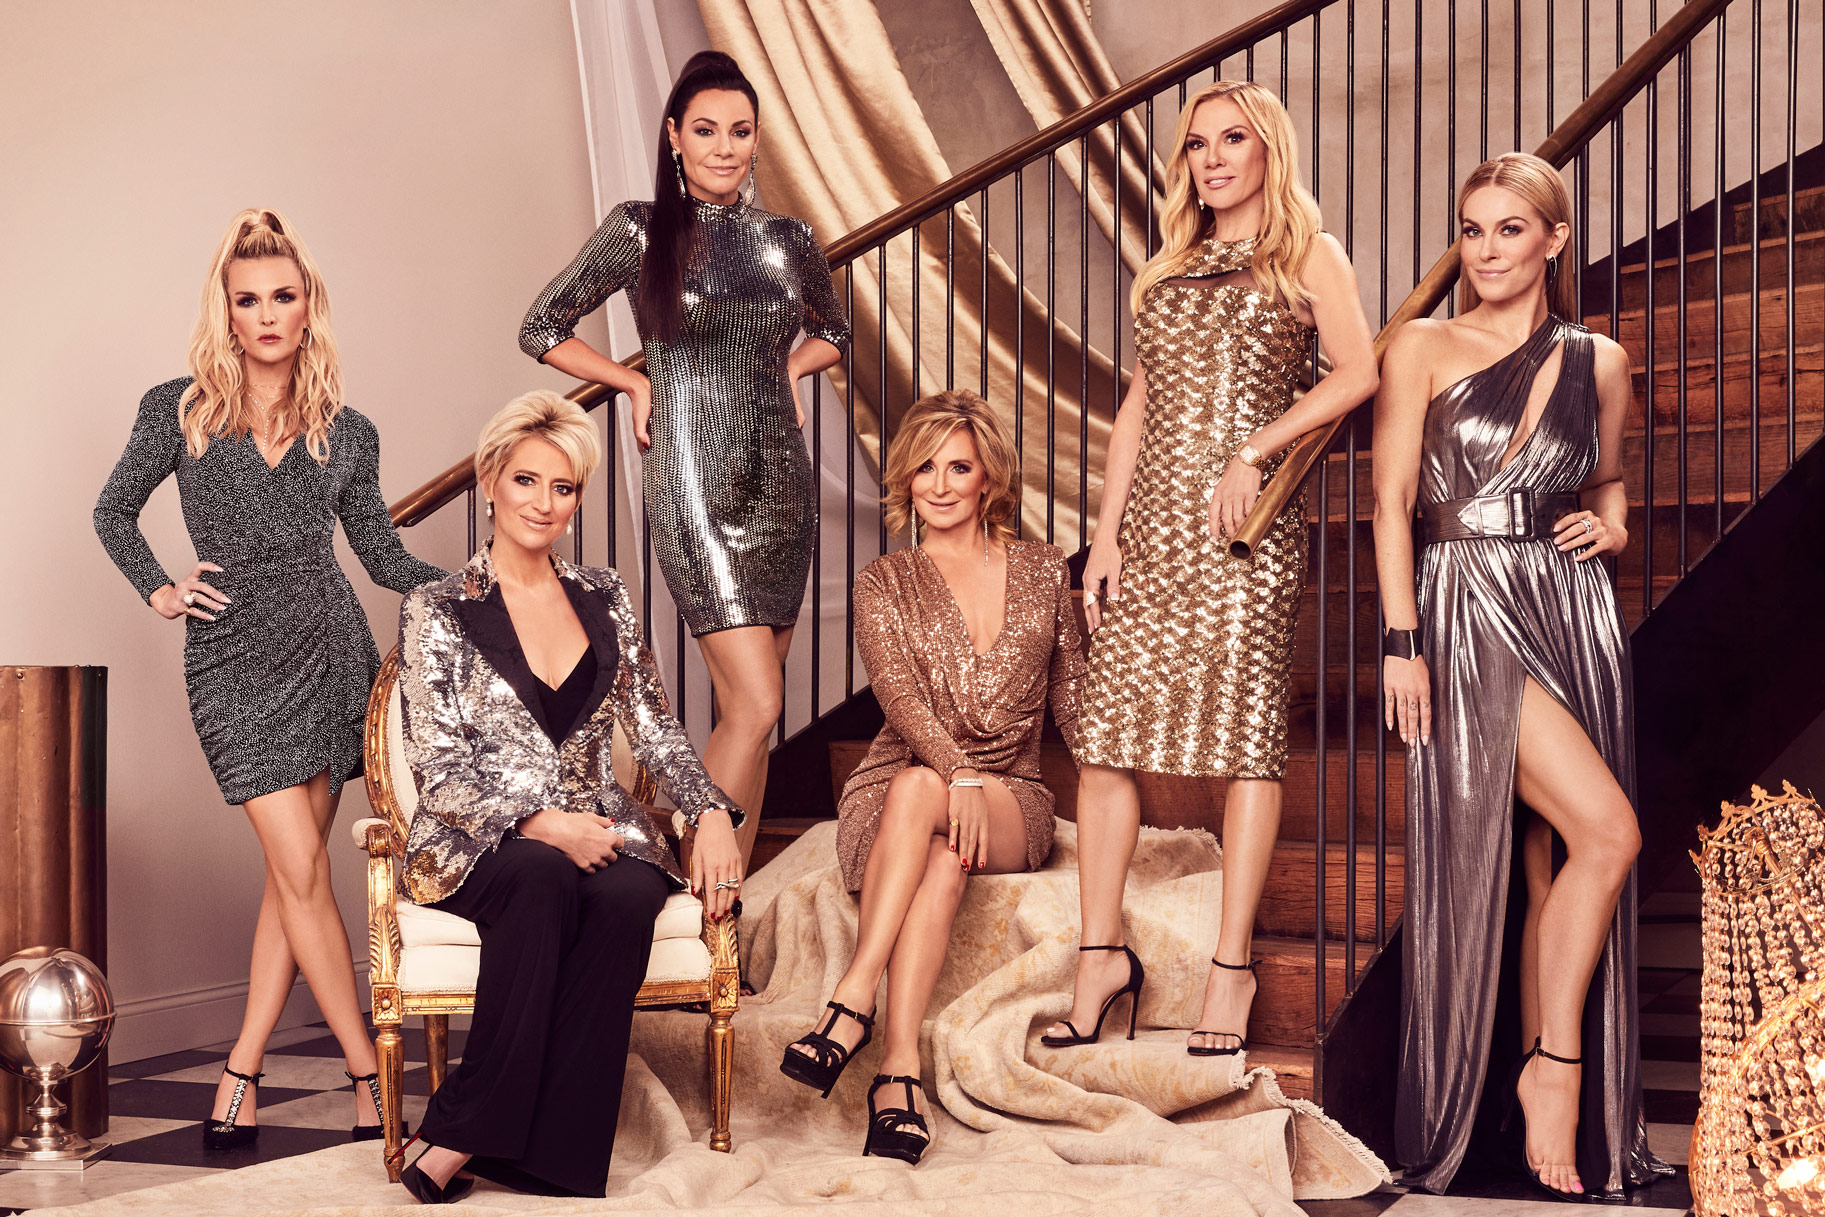 andy-cohen-says-the-rhony-cast-drinking-habits-will-be-addressed